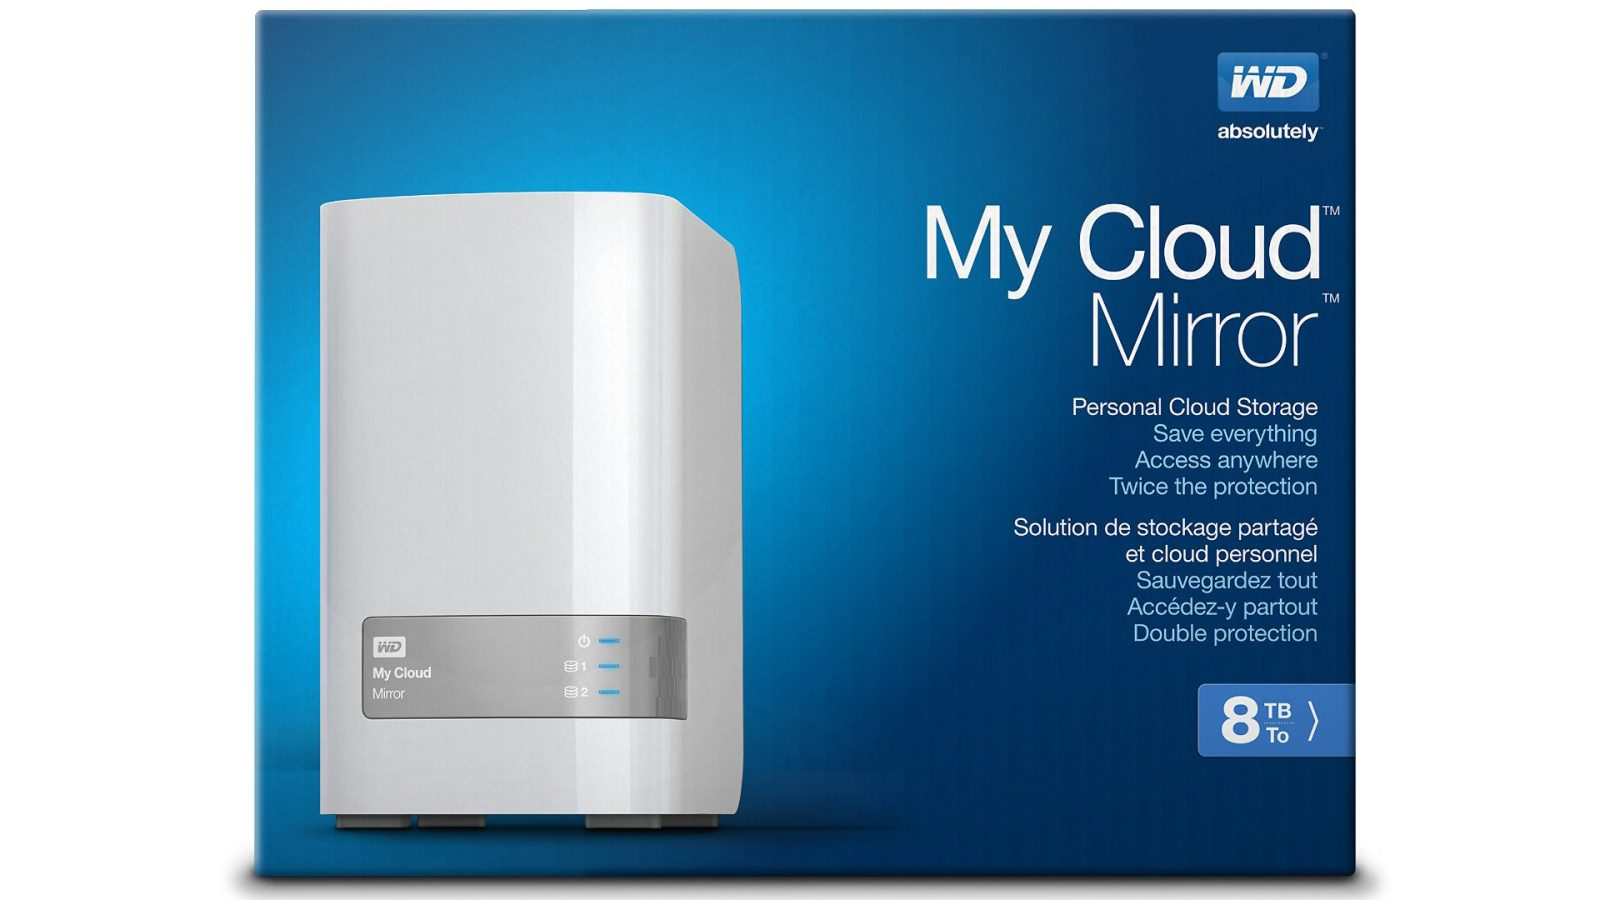 WD My Cloud Mirror 8TB 2-bay Personal Cloud Storage: $280 shipped